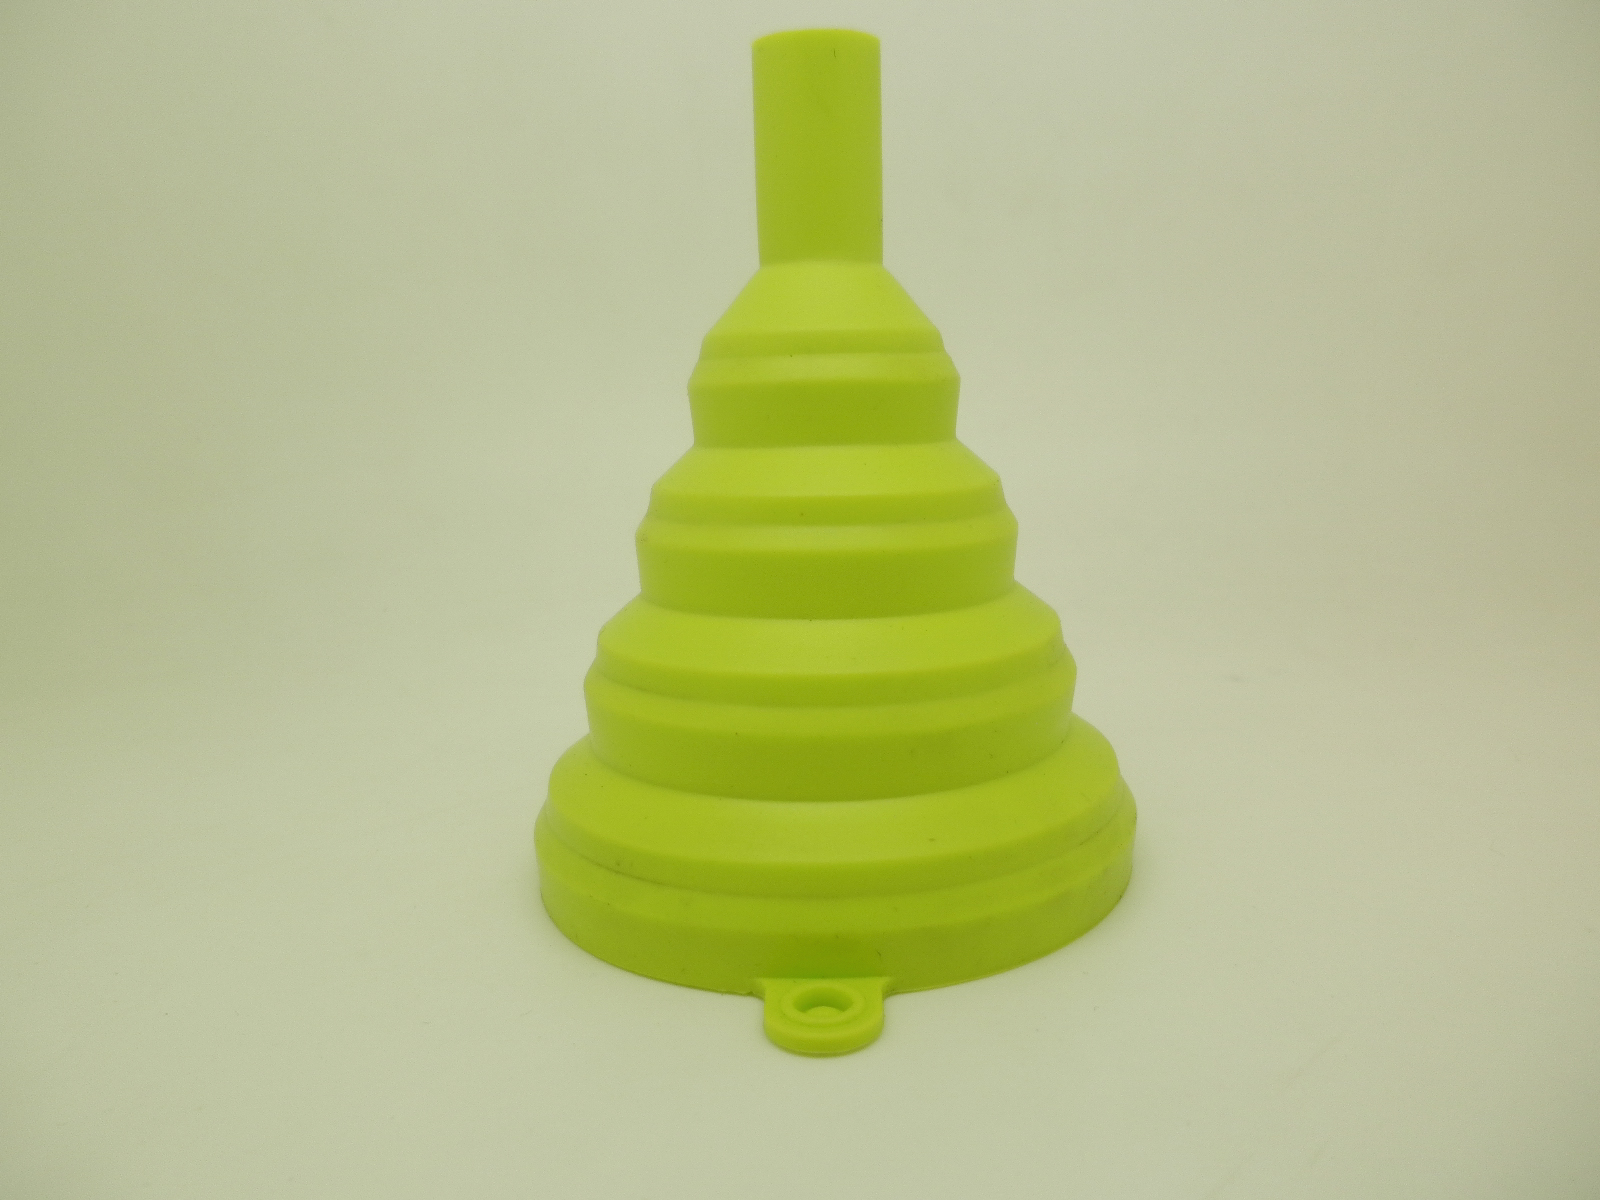 http://www.refinehksilicone.cn/data/images/product/20180416171015_784.jpg